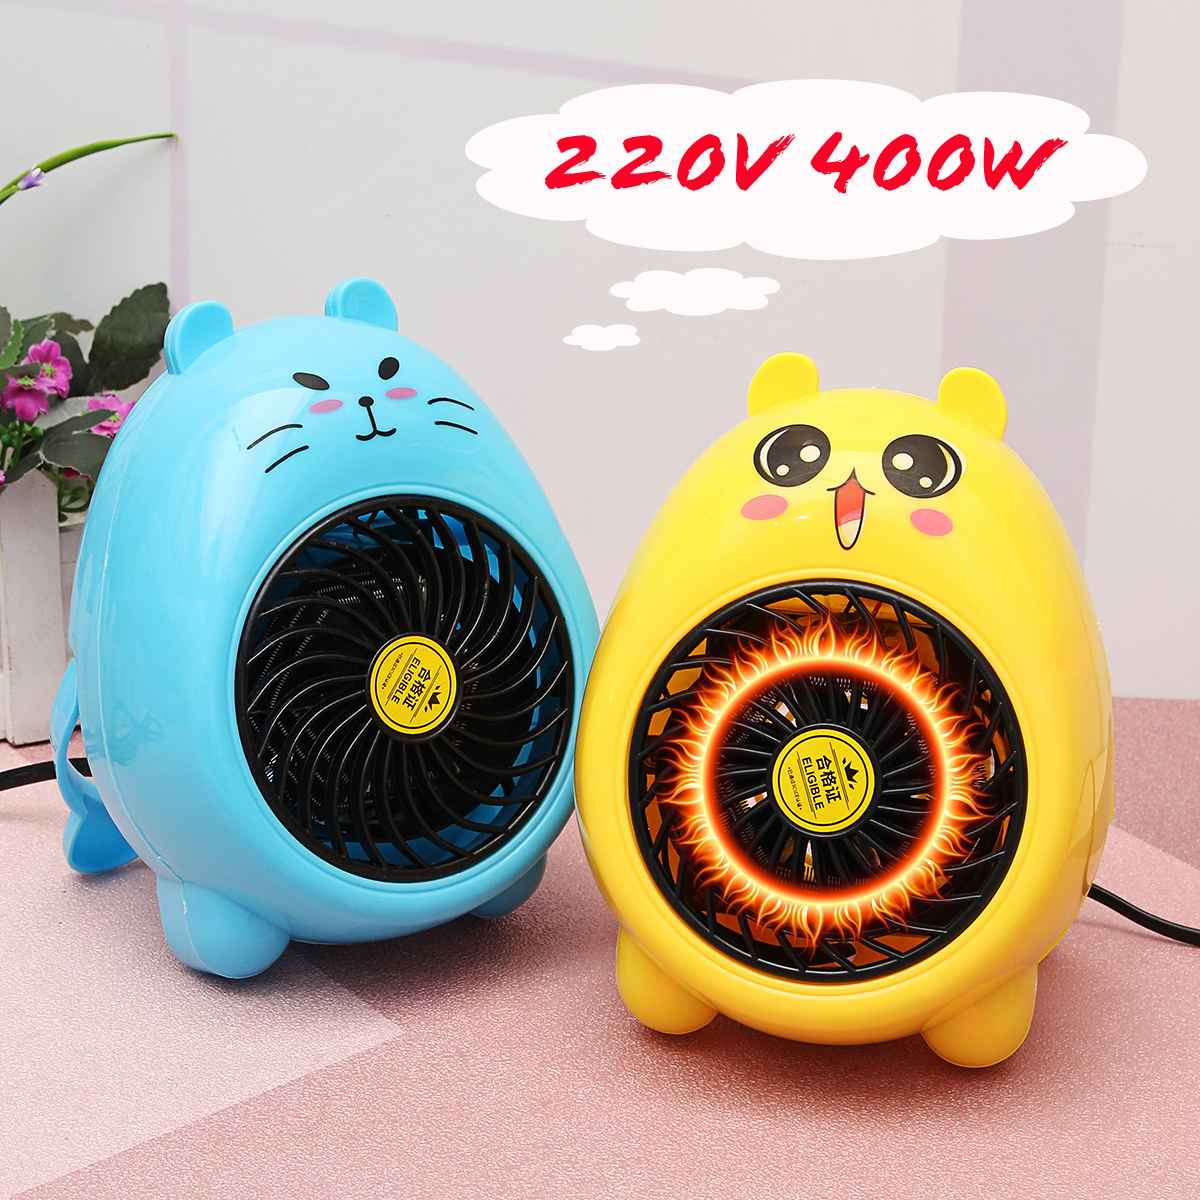 220V 400W Mini Small Electric Heaters Fan Home Office Heater Warmer Electric Warming Treasure Blue/Yellow